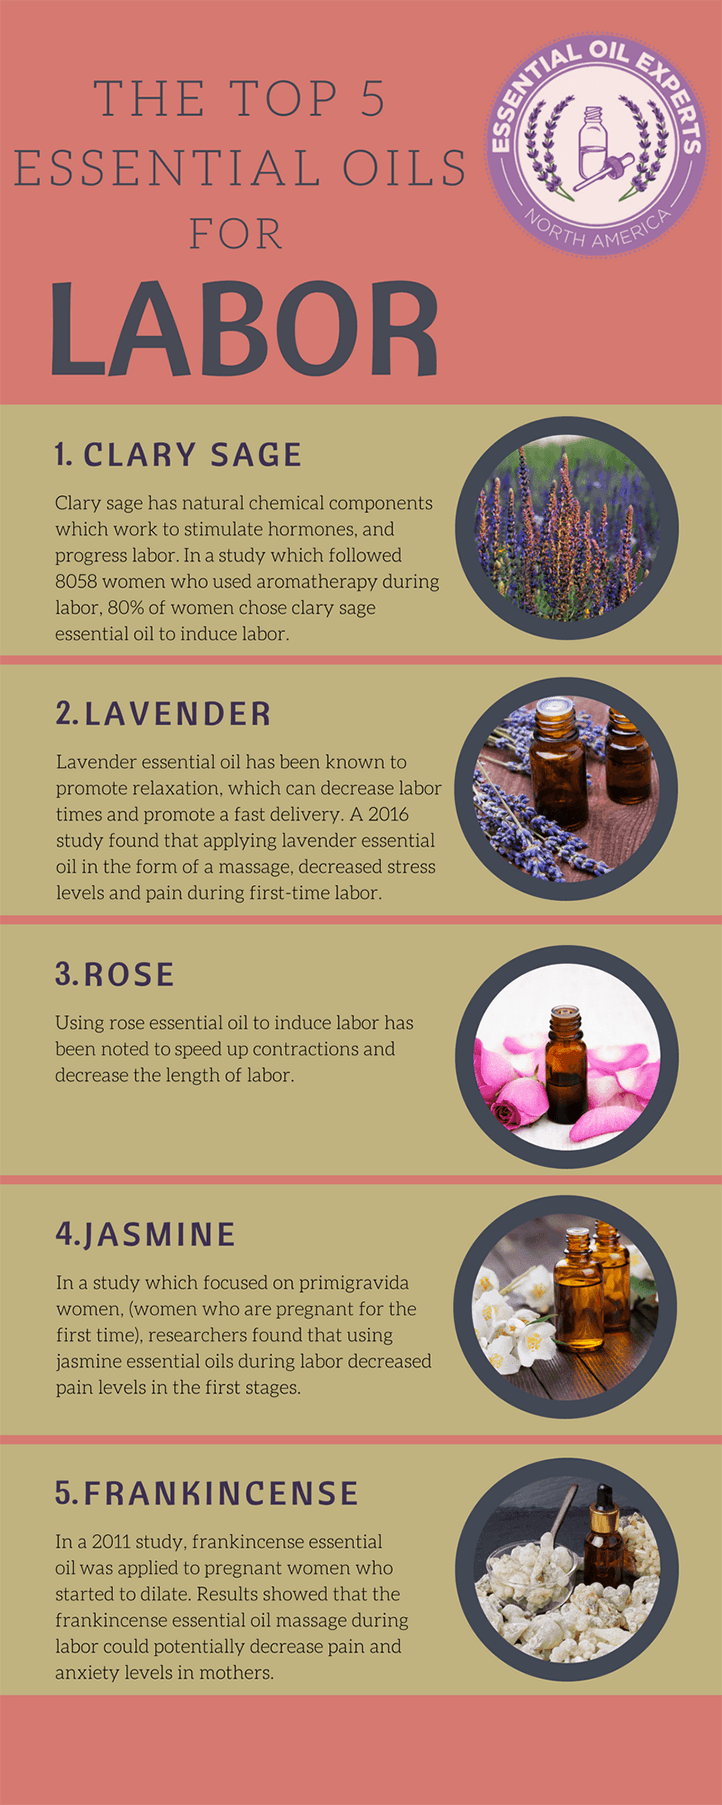 Top 5 Best Essential Oils for Labor - Aromatherapy for Labor & Birth